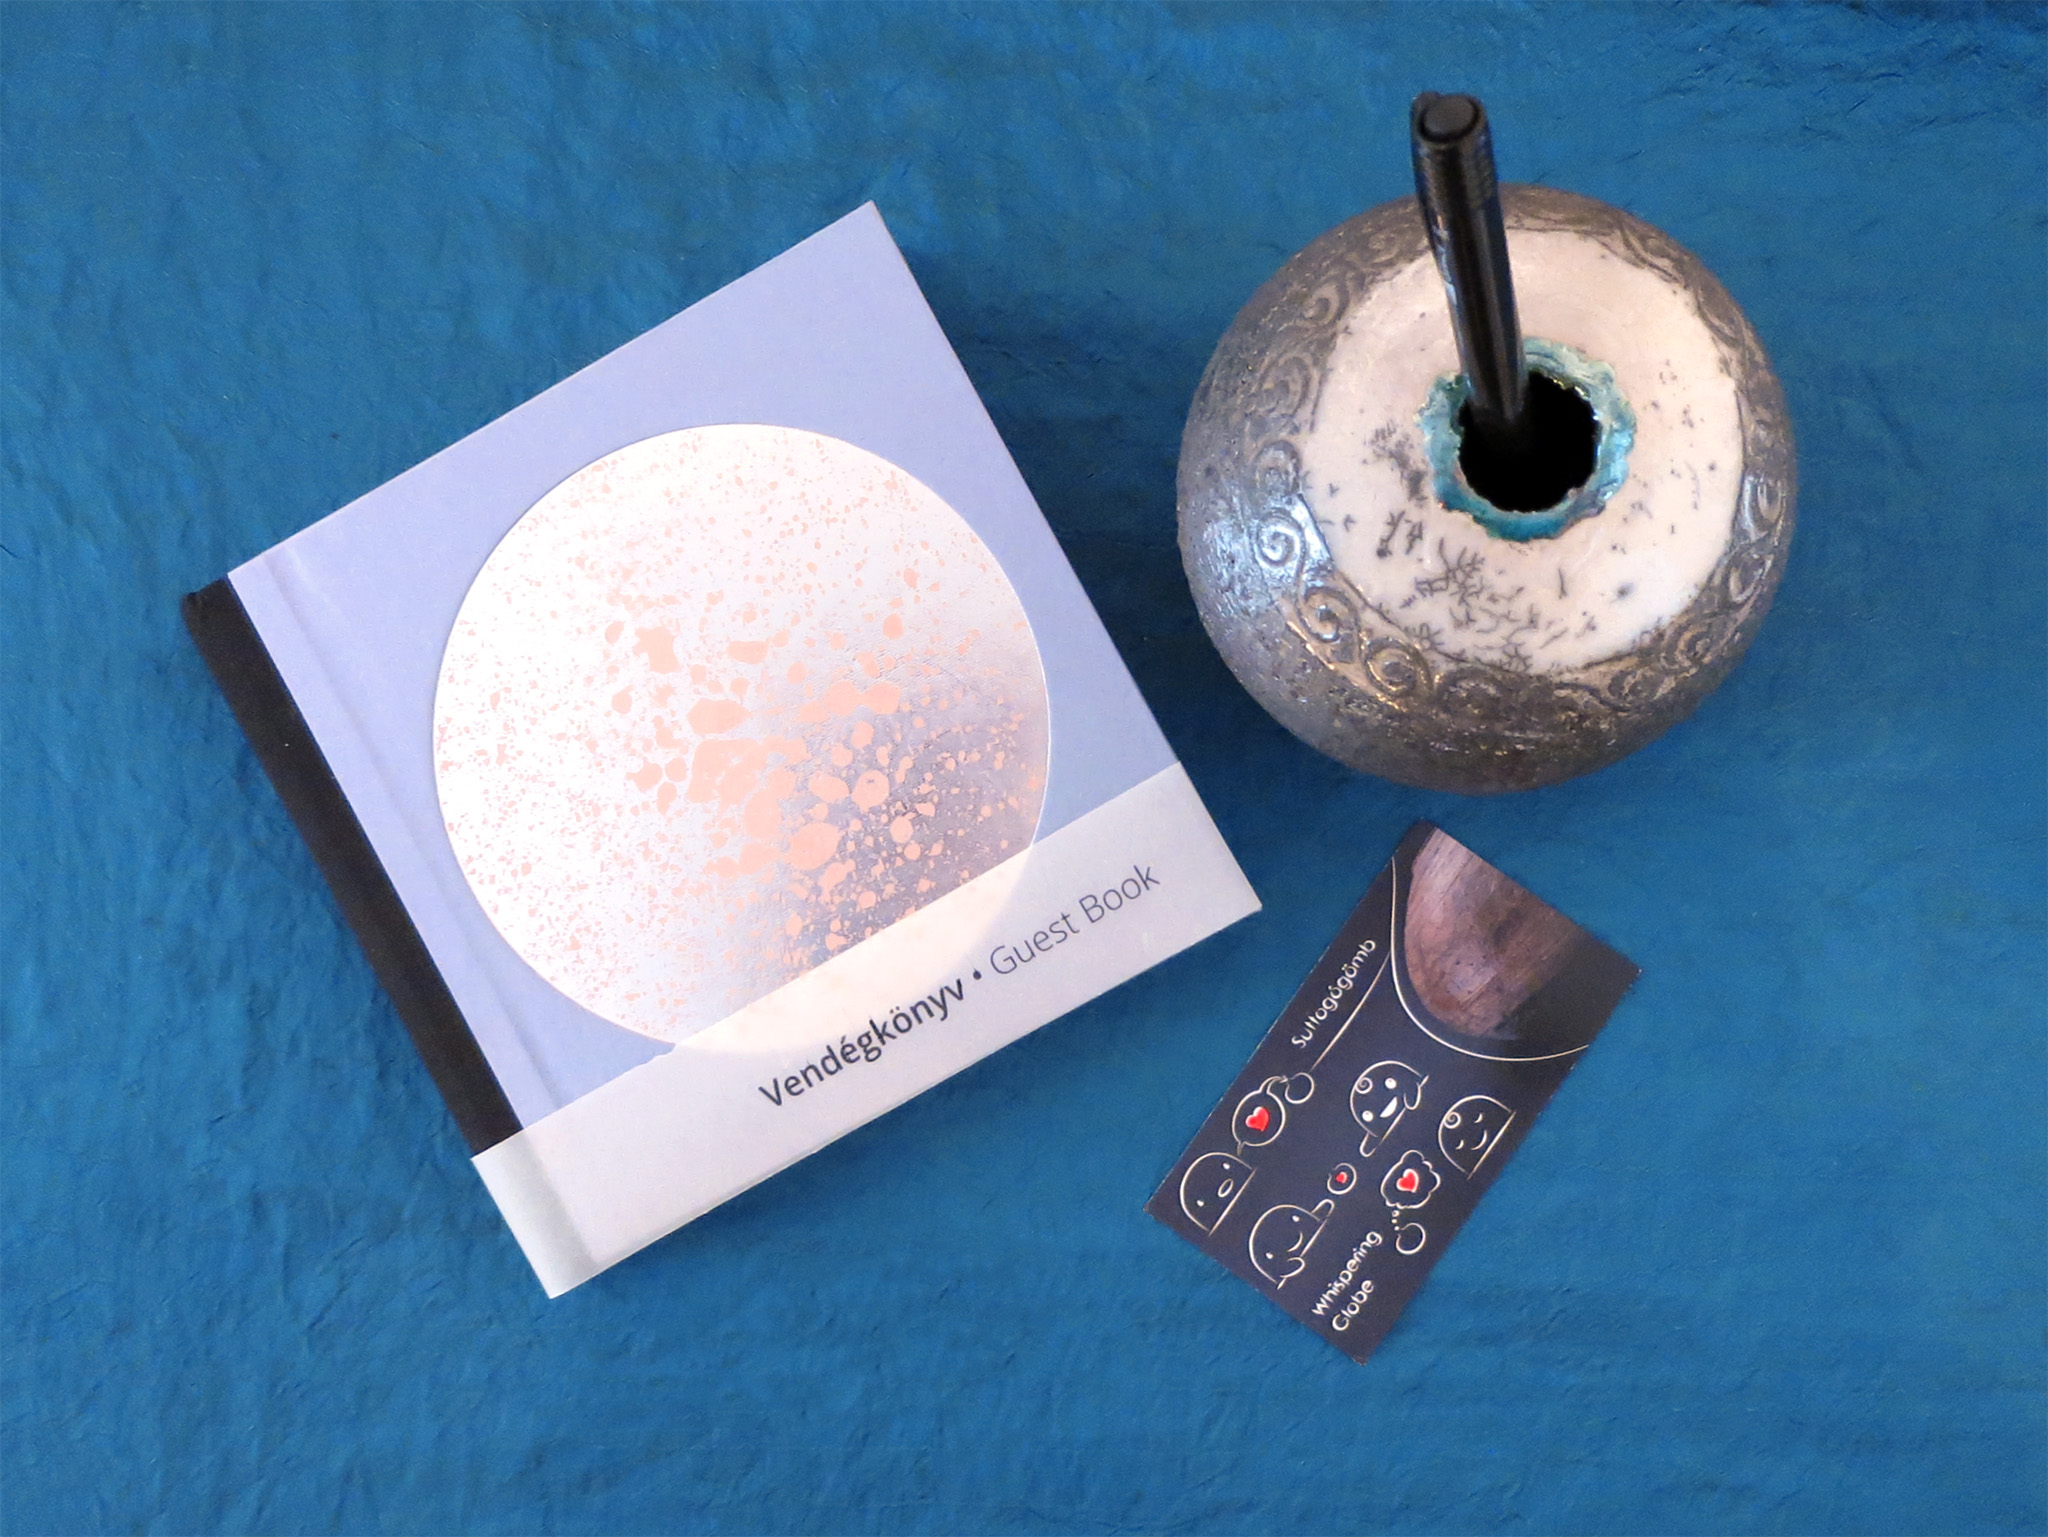 Guest Book • by DOT for You - Tangible Universes: Solo Exhibition with Whispering Globes